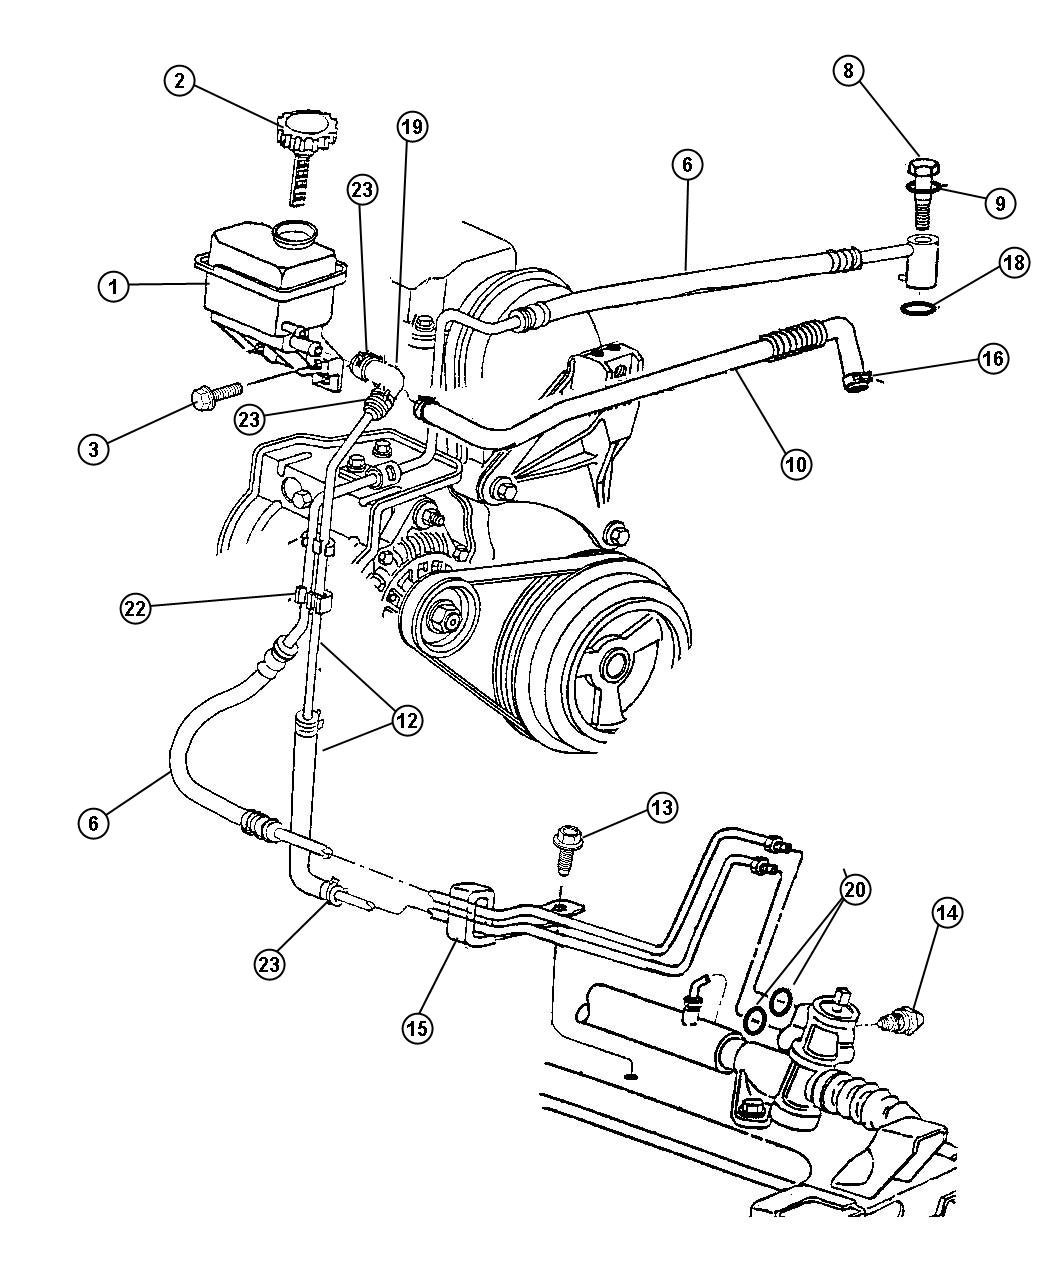 wiring diagram for 2003 dodge neon wiring diagram for 2005